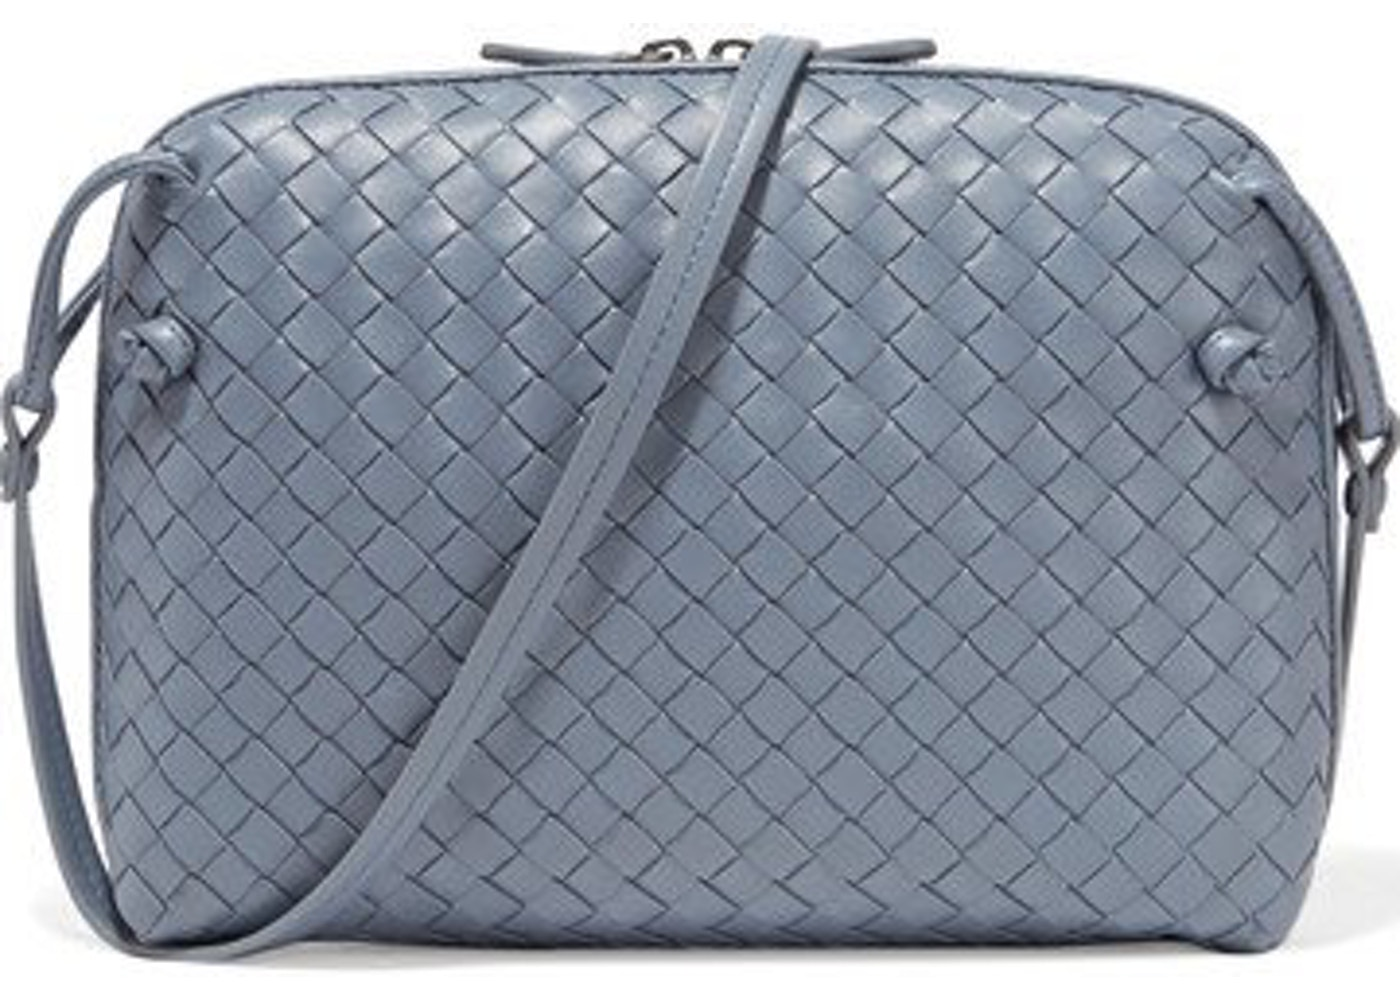 fd243395b098 Bottega Veneta Nodini Crossbody Nappa Intrecciato Lambskin Small Cornflower  Blue. Nappa Intrecciato Lambskin Small Cornflower Blue